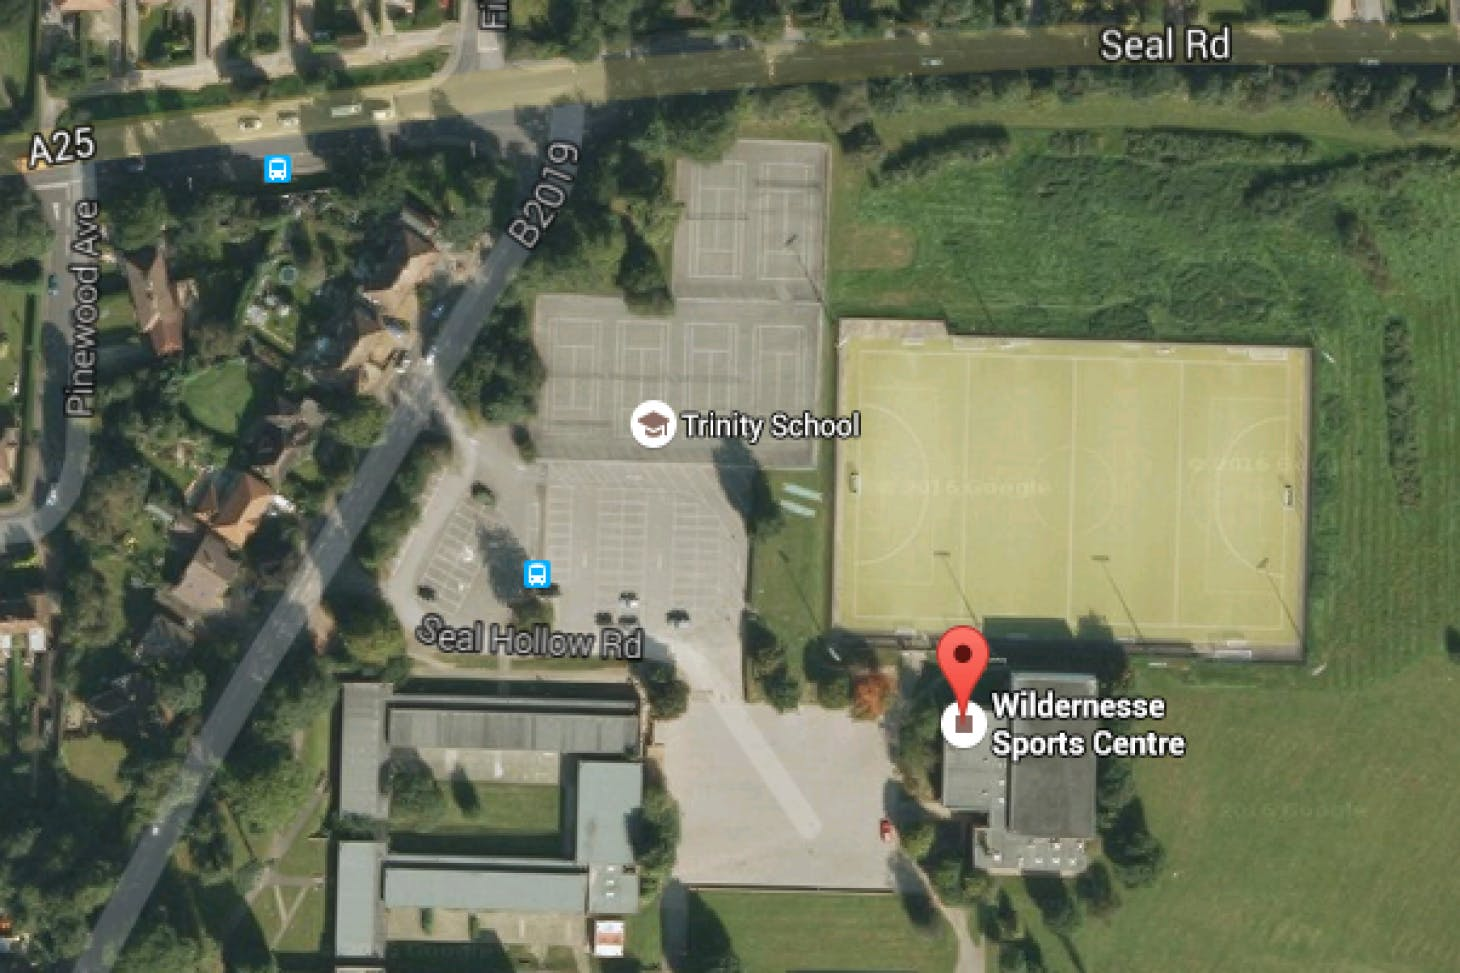 Wildernesse Sports Centre 11 a side | Astroturf football pitch